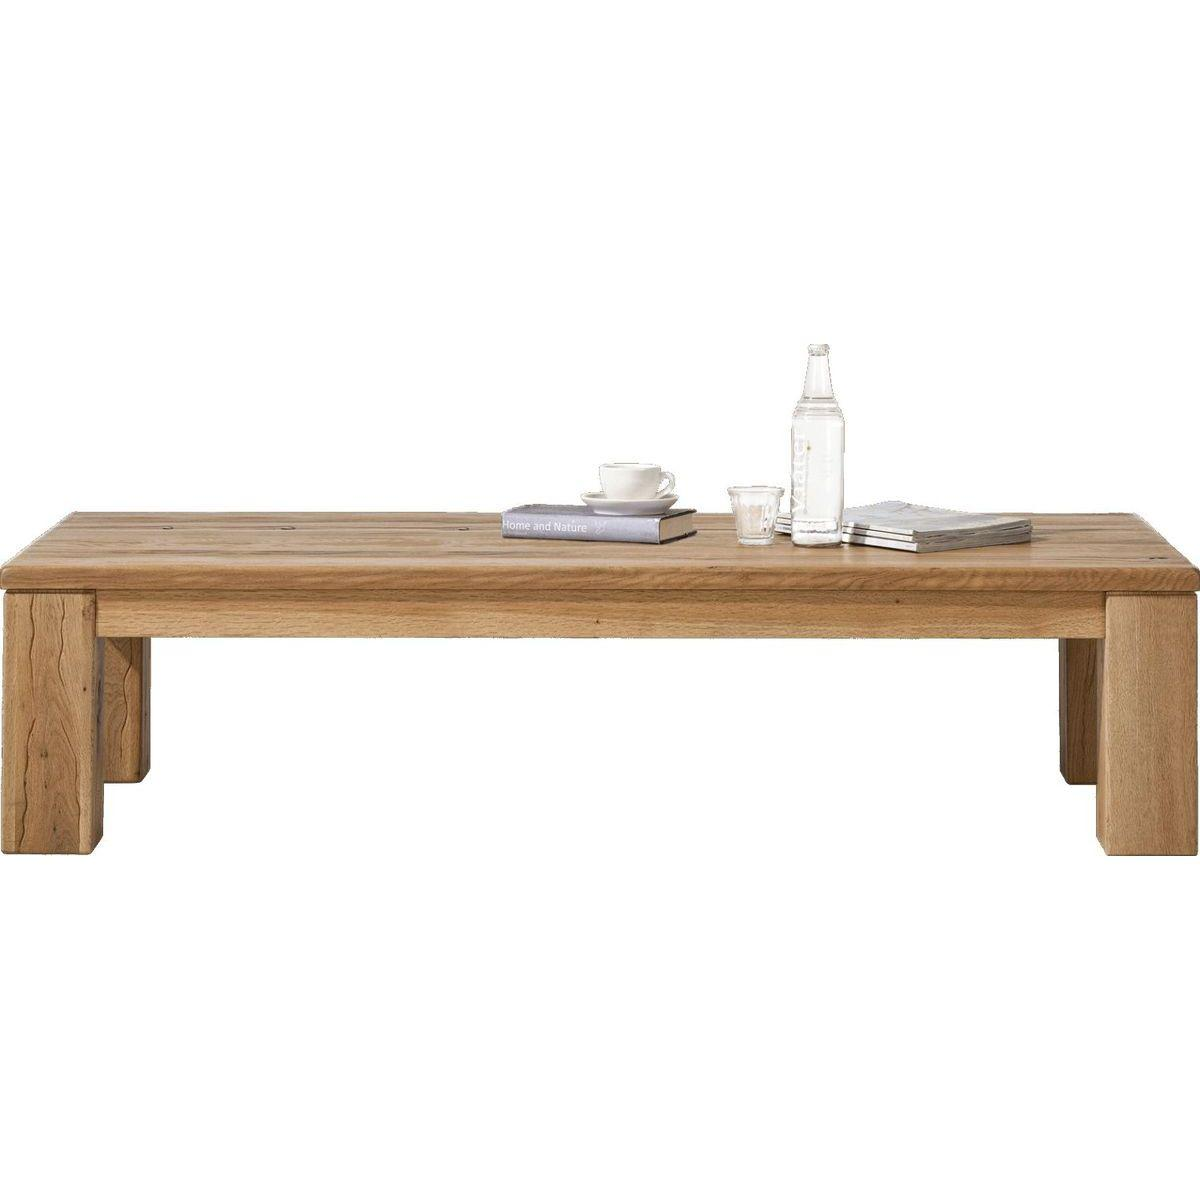 MASTERS by H&H Table basse 90x160cm